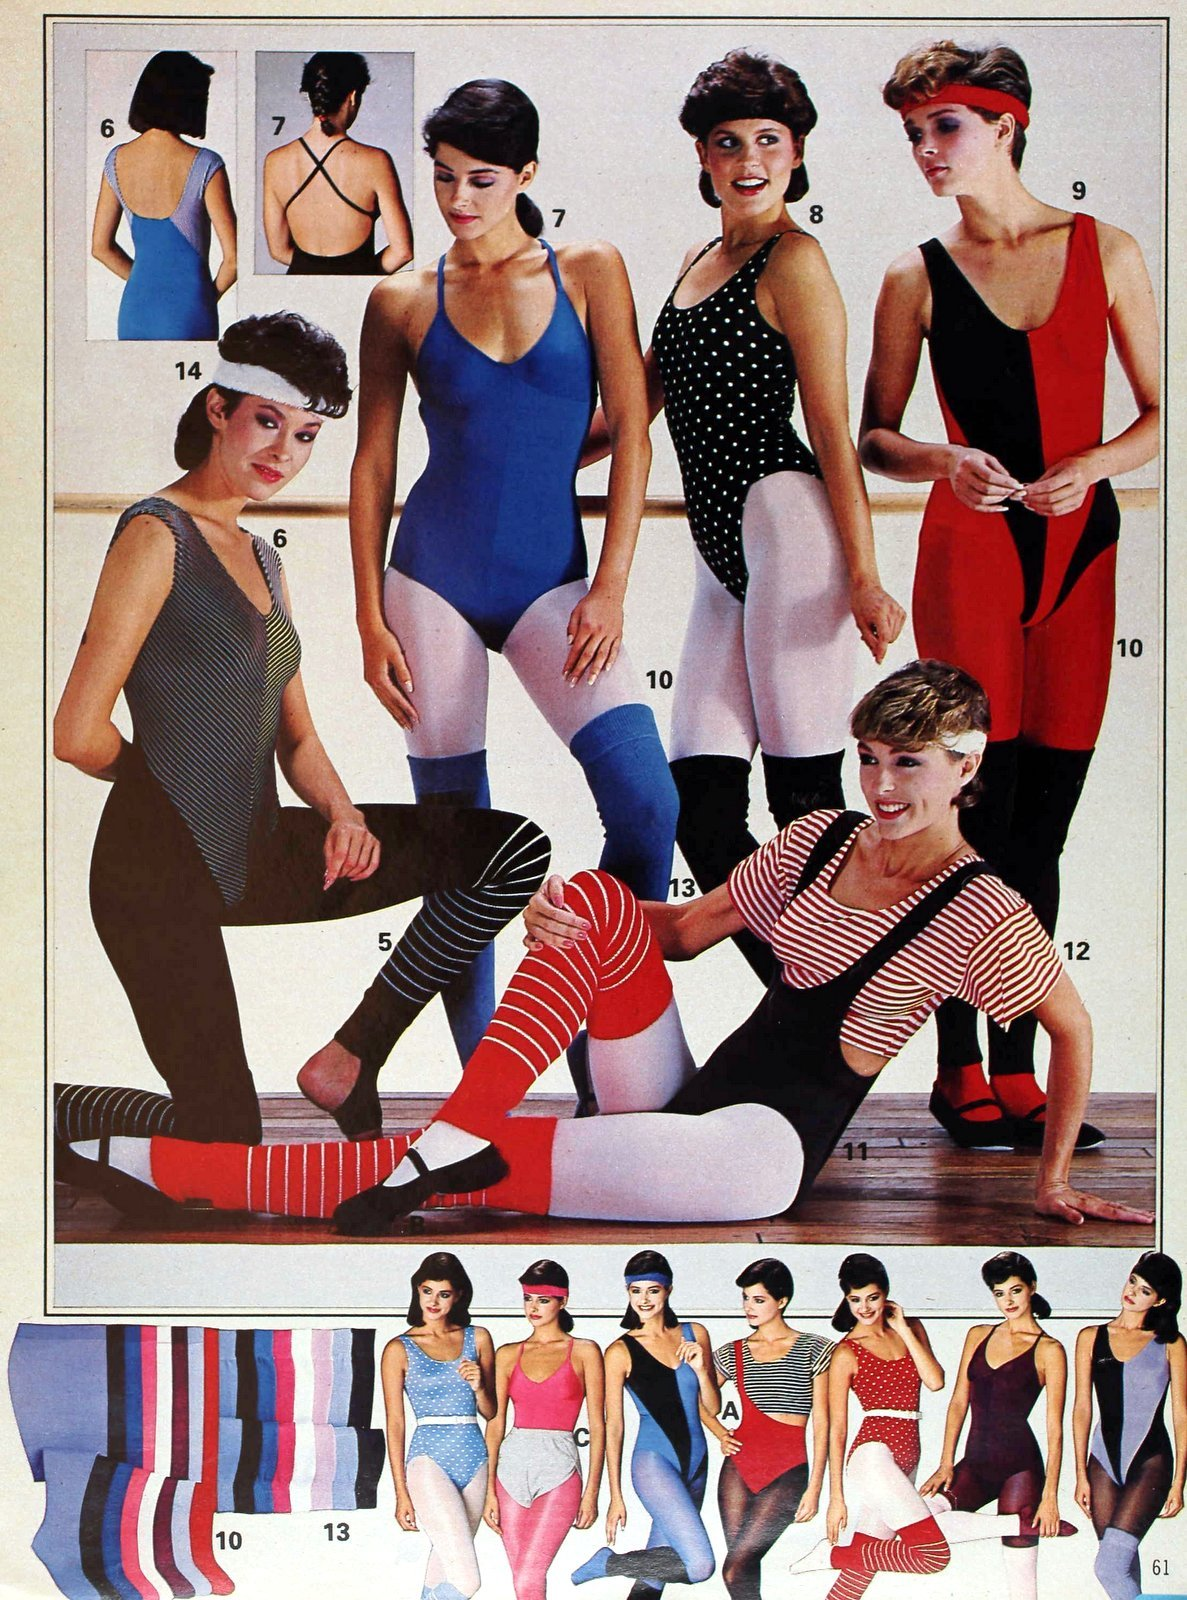 Women in the 80s at gym or dance class with leotards, tights and leg warmers